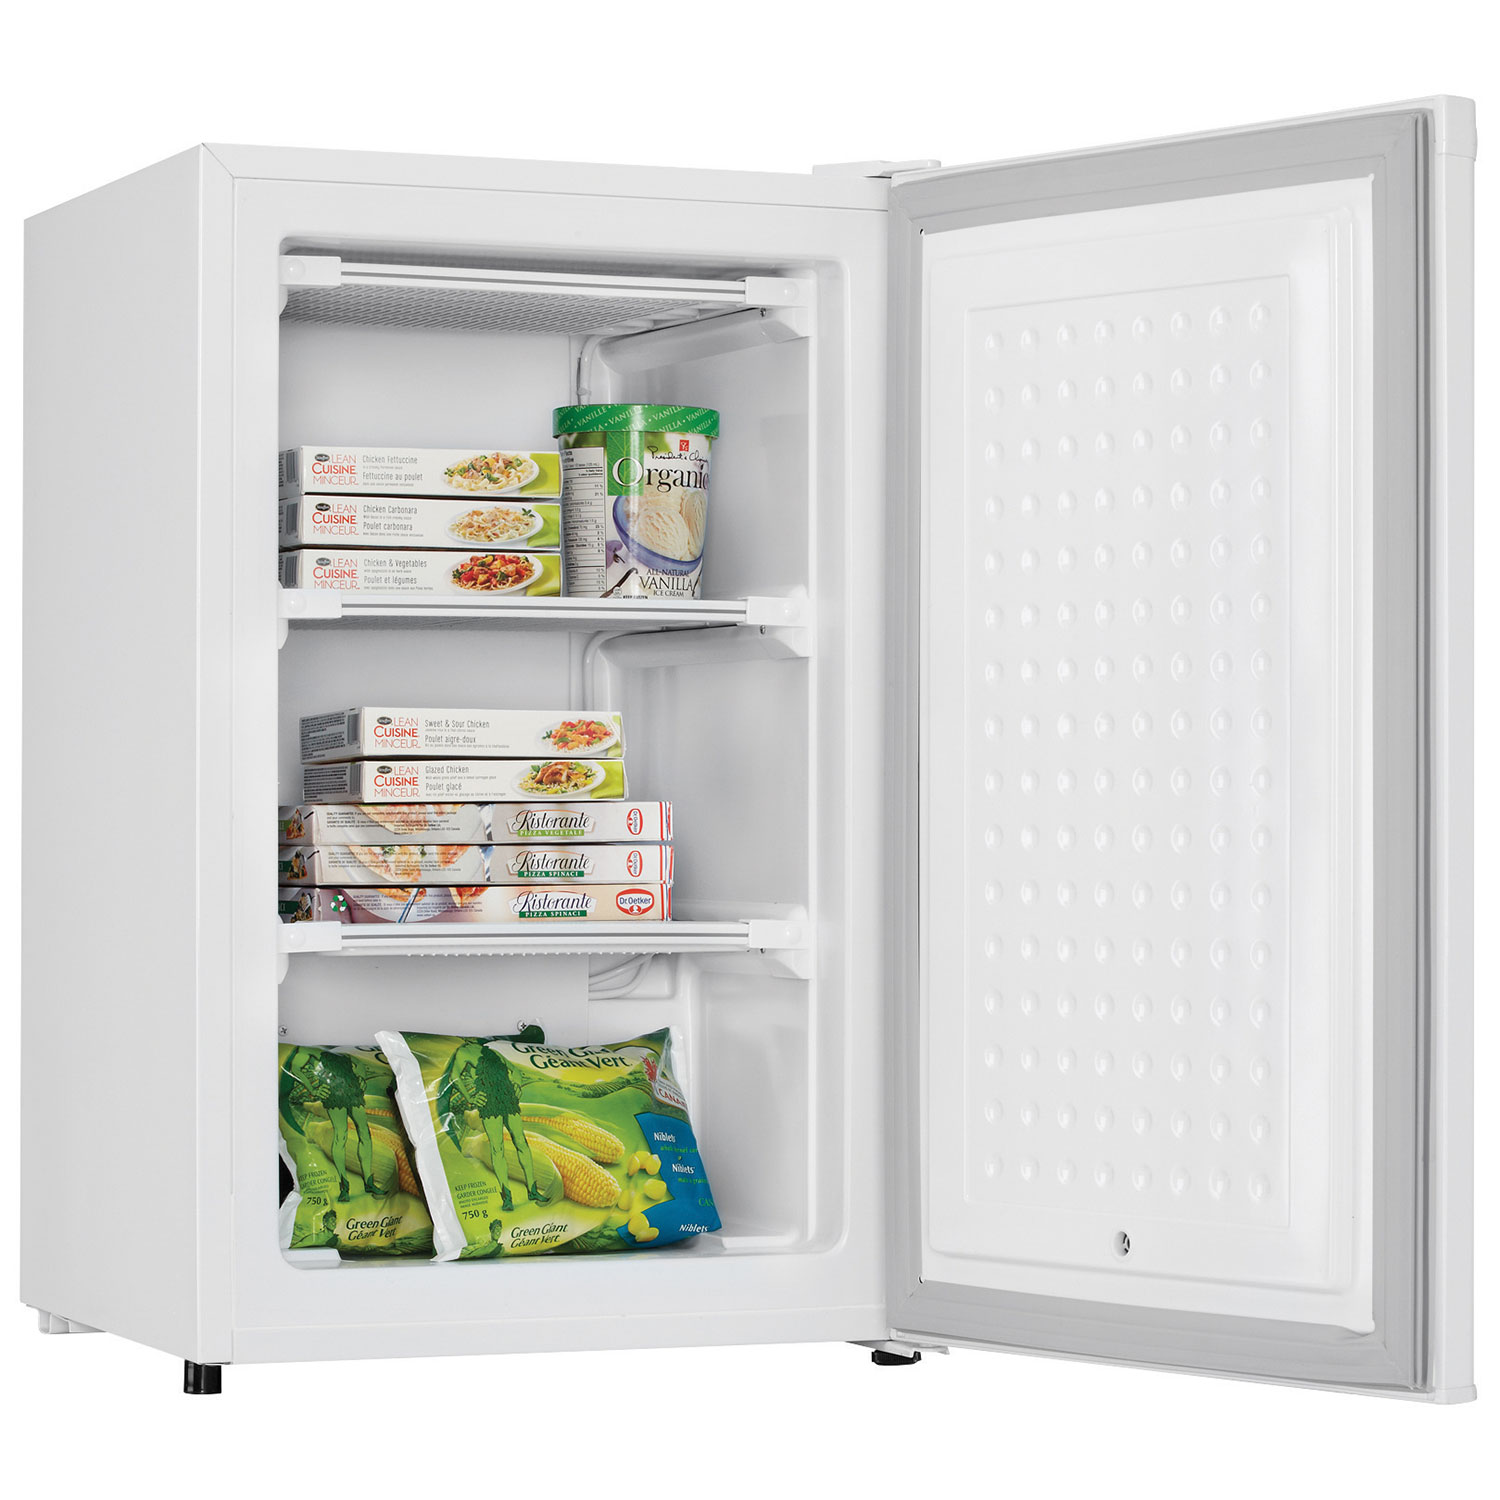 Vertical Freezers For Sale Danby 32 Cu Ft Upright Freezer Dufm032a1wdb White